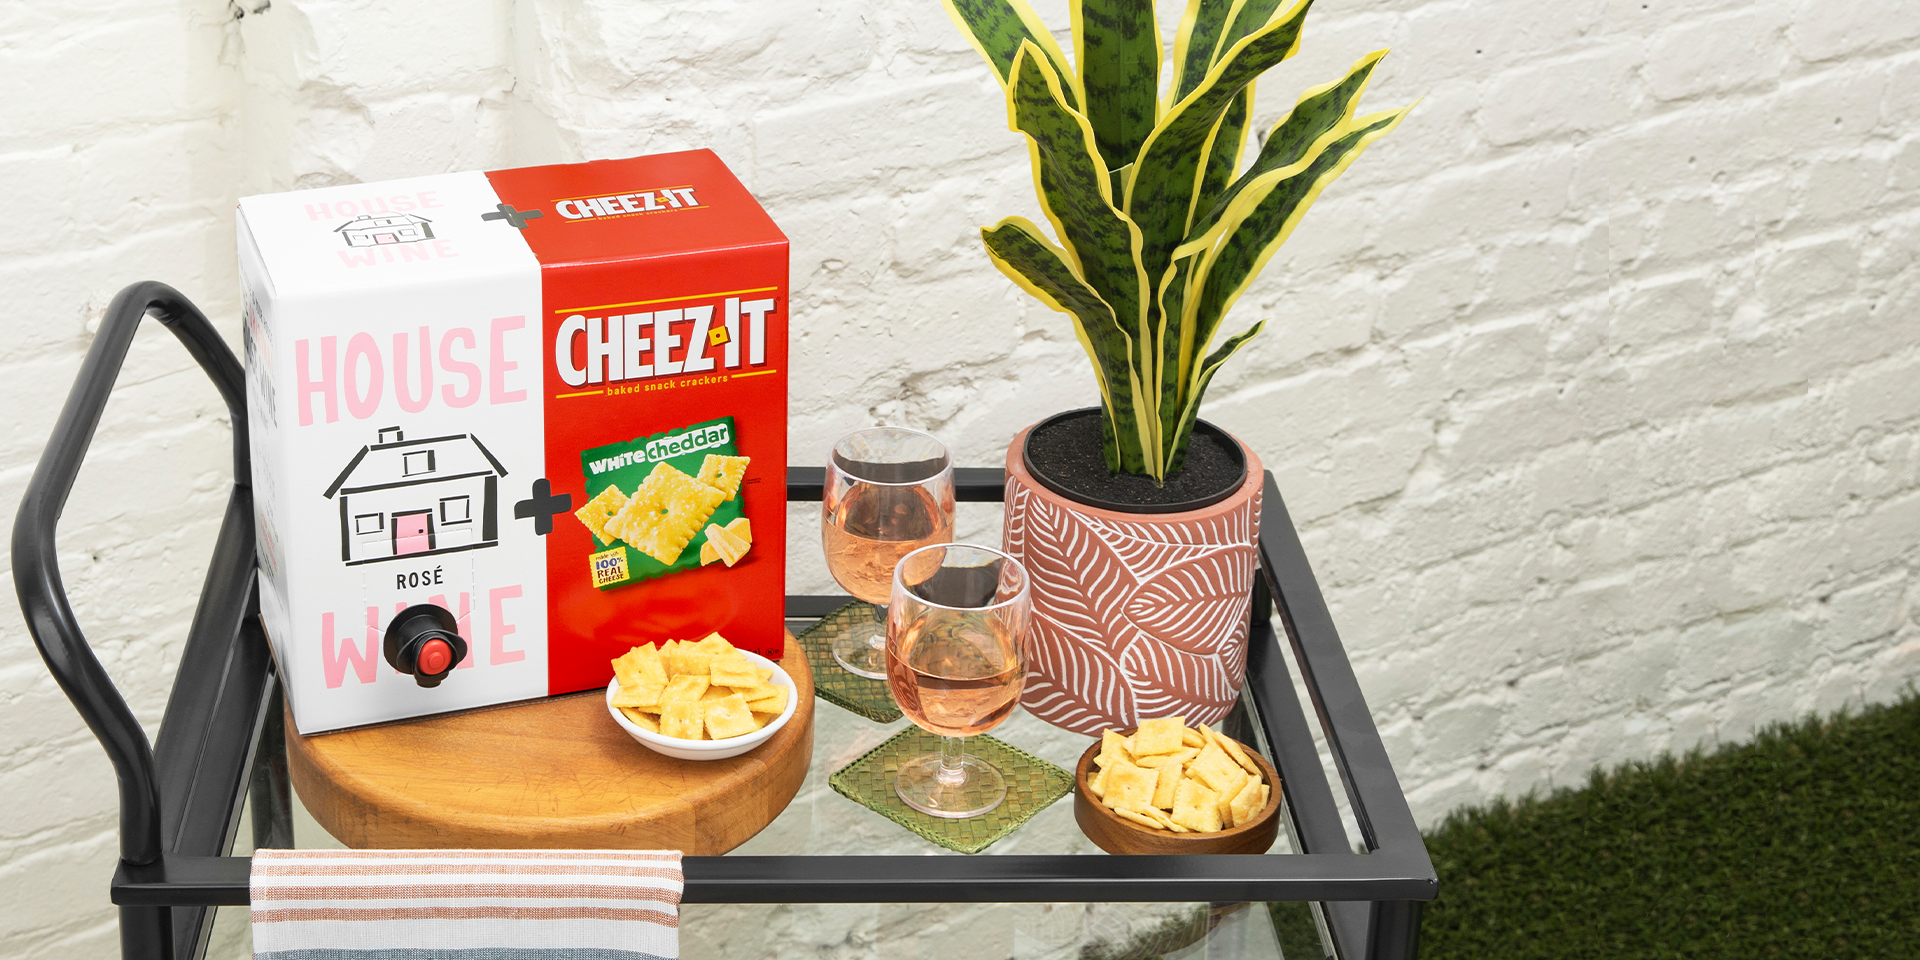 House Wine Rose and Cheez-It White Cheddar Box on bar cart